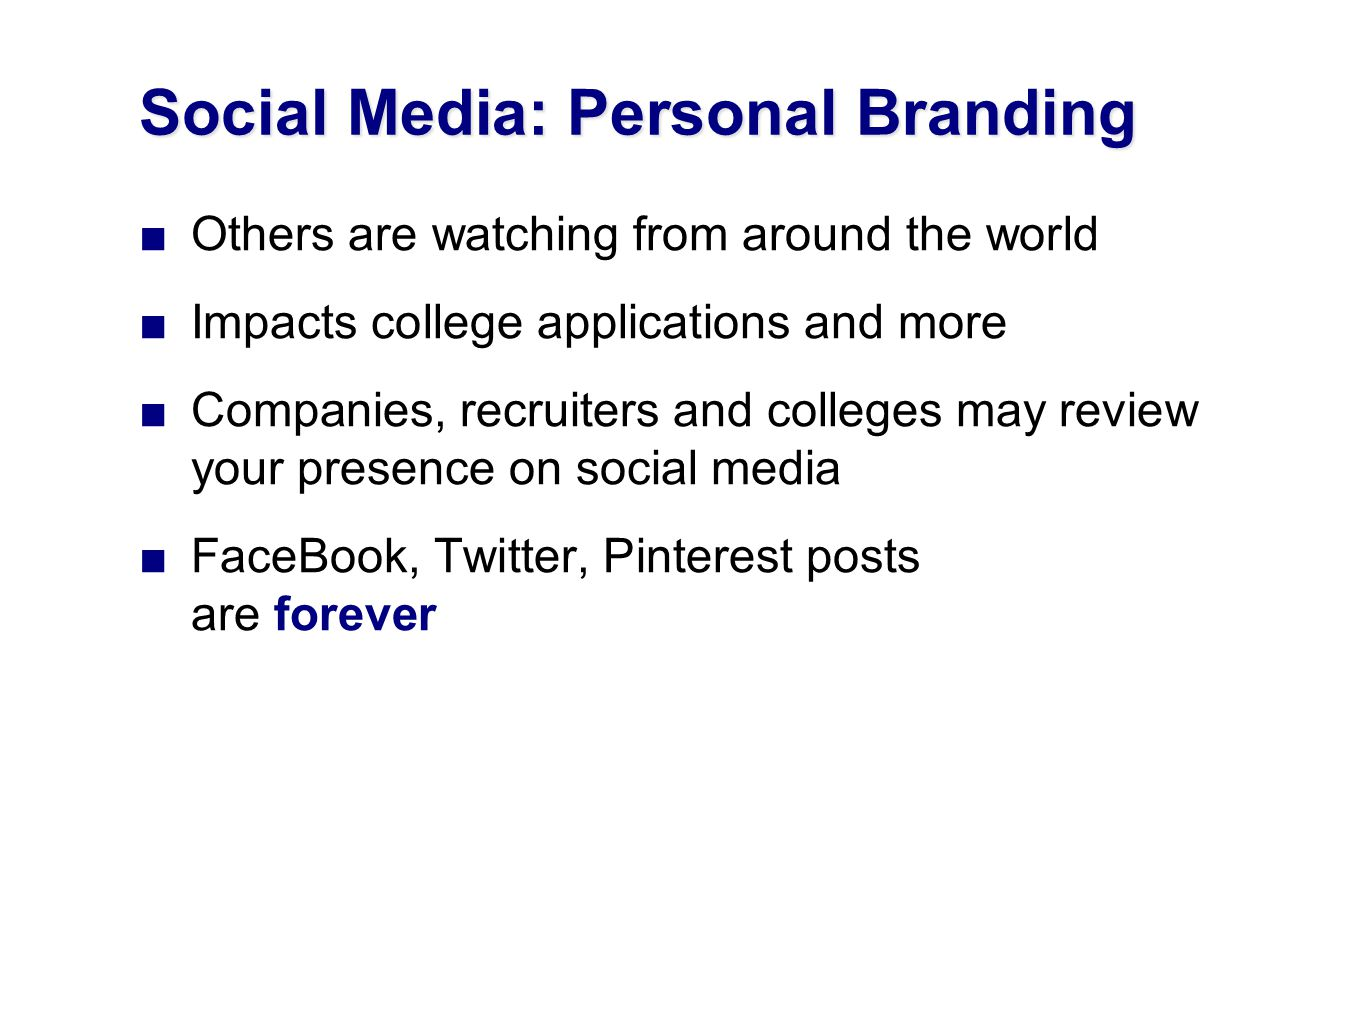 Social Media: Personal Branding Others are watching from around the world Impacts college applications and more Companies, recruiters and colleges may review your presence on social media FaceBook, Twitter, Pinterest posts are forever